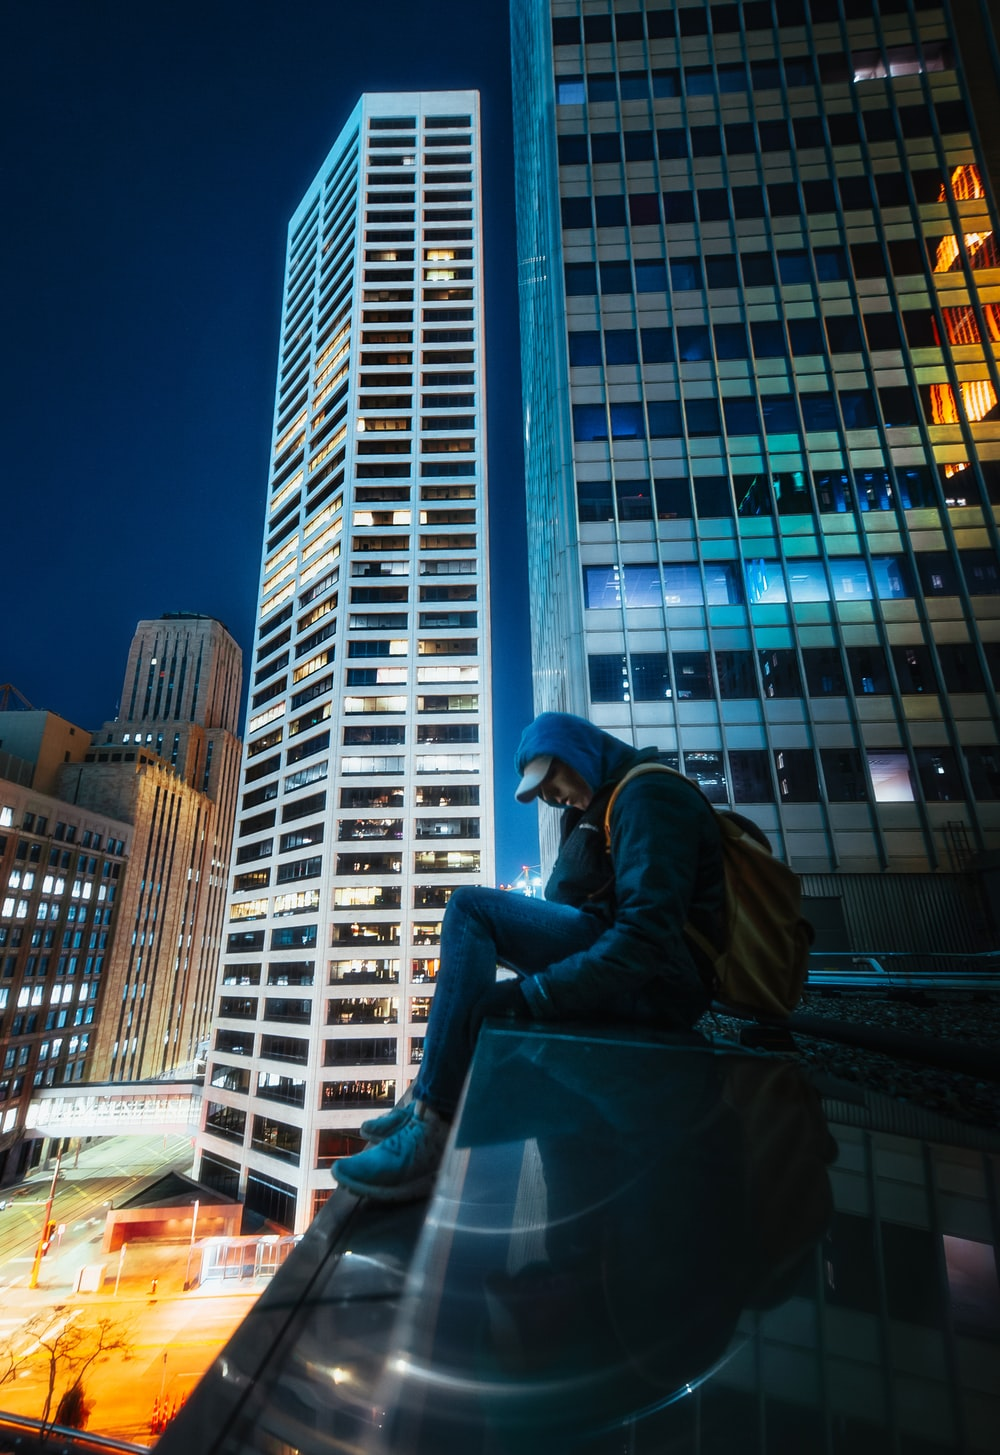 man in black jacket sitting on the edge of a building